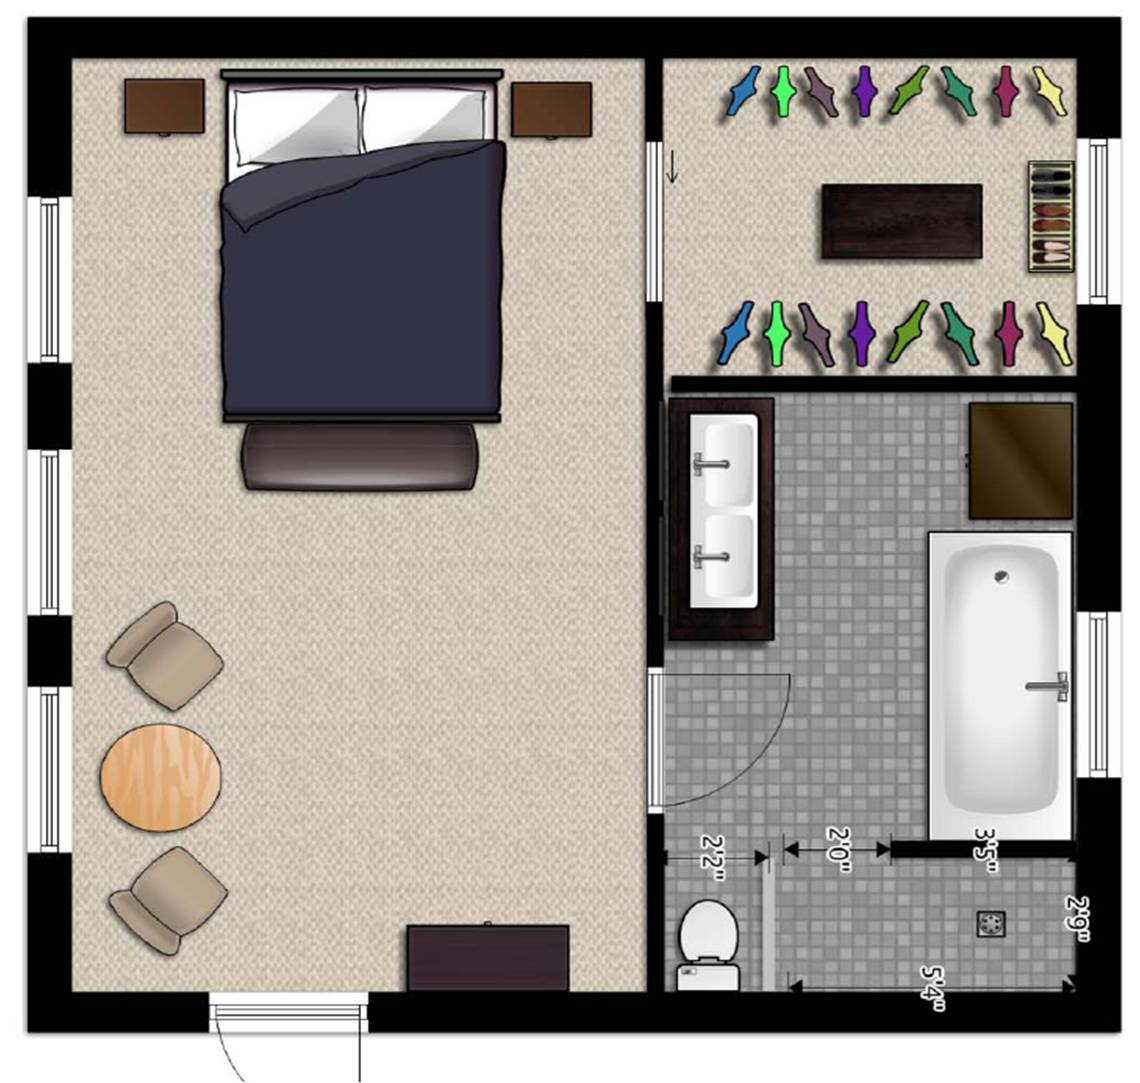 admire and design next renovation project master suite addition